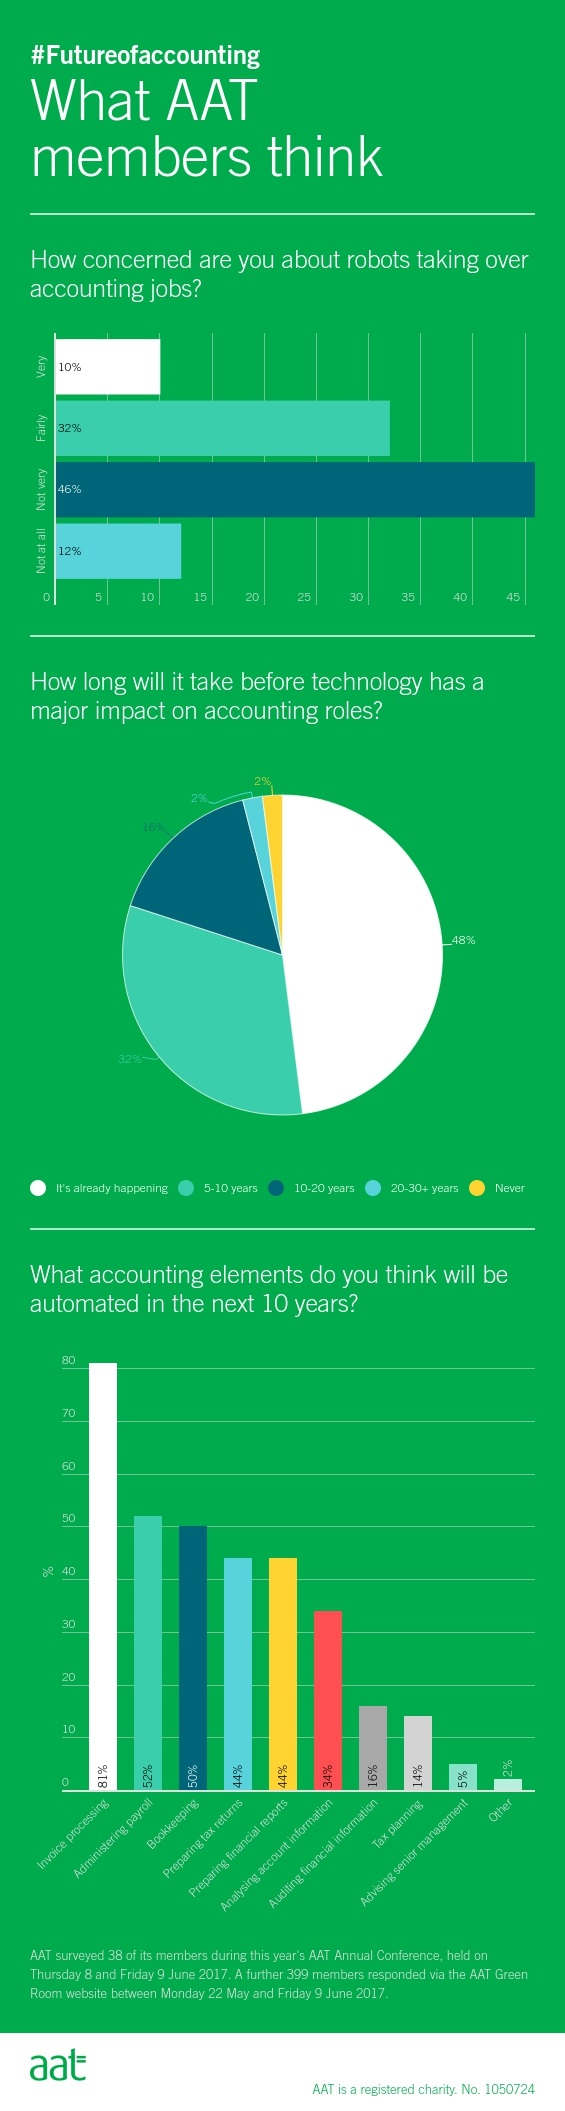 Infographic showing how concerned AAT members are about automation of accounting tasks, after a poll taken at the Annual Conference 2017